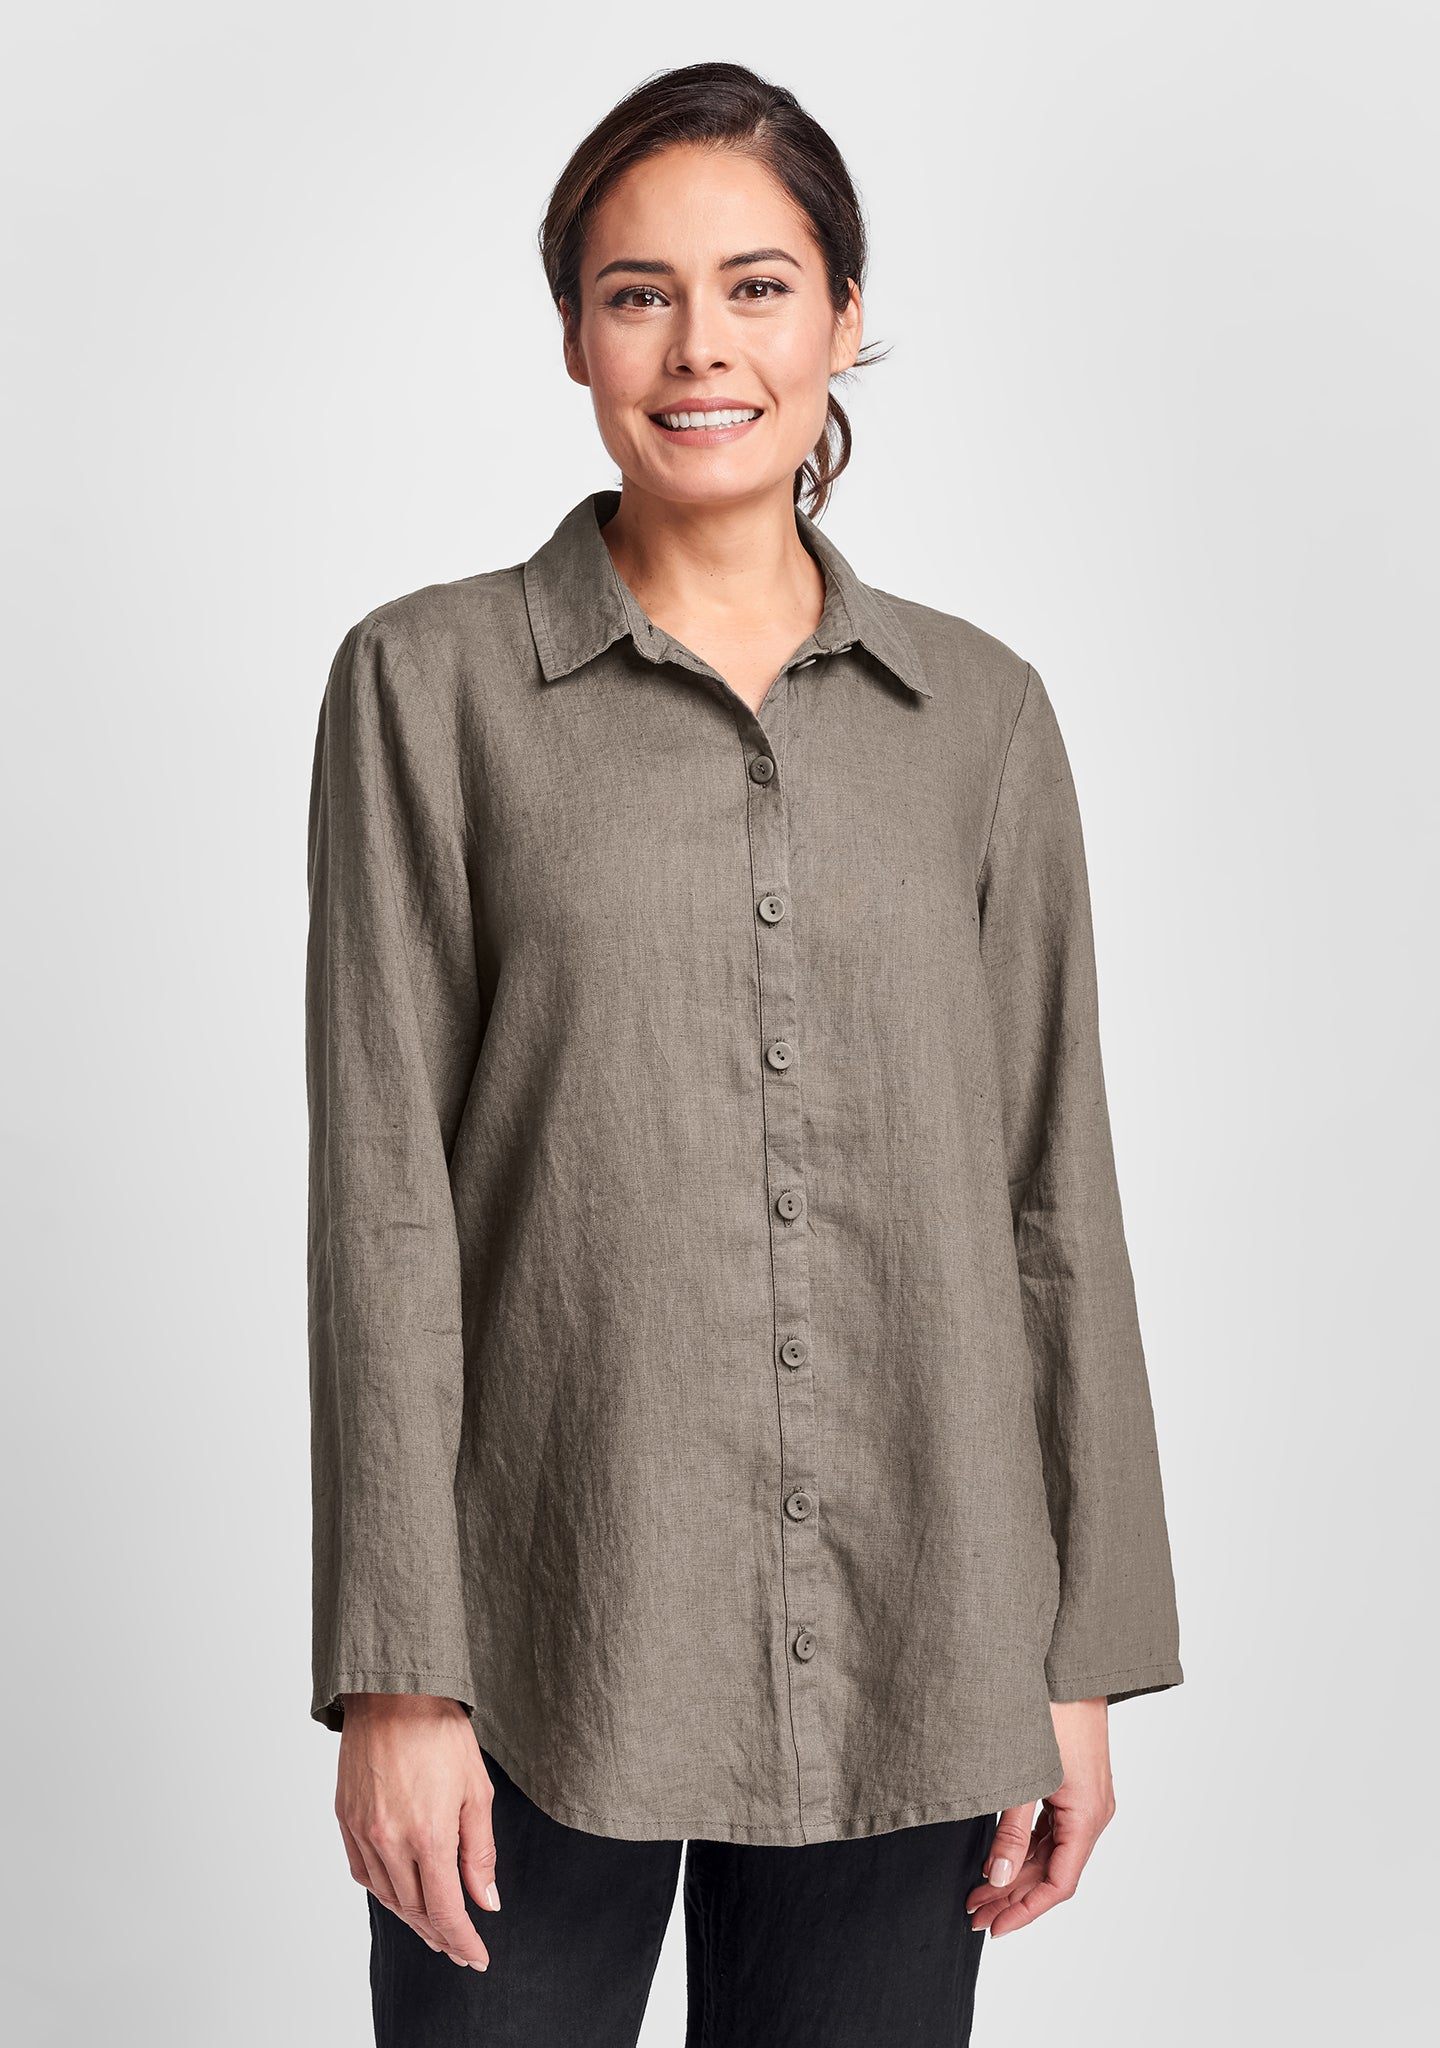 crossroads blouse linen button down shirt brown